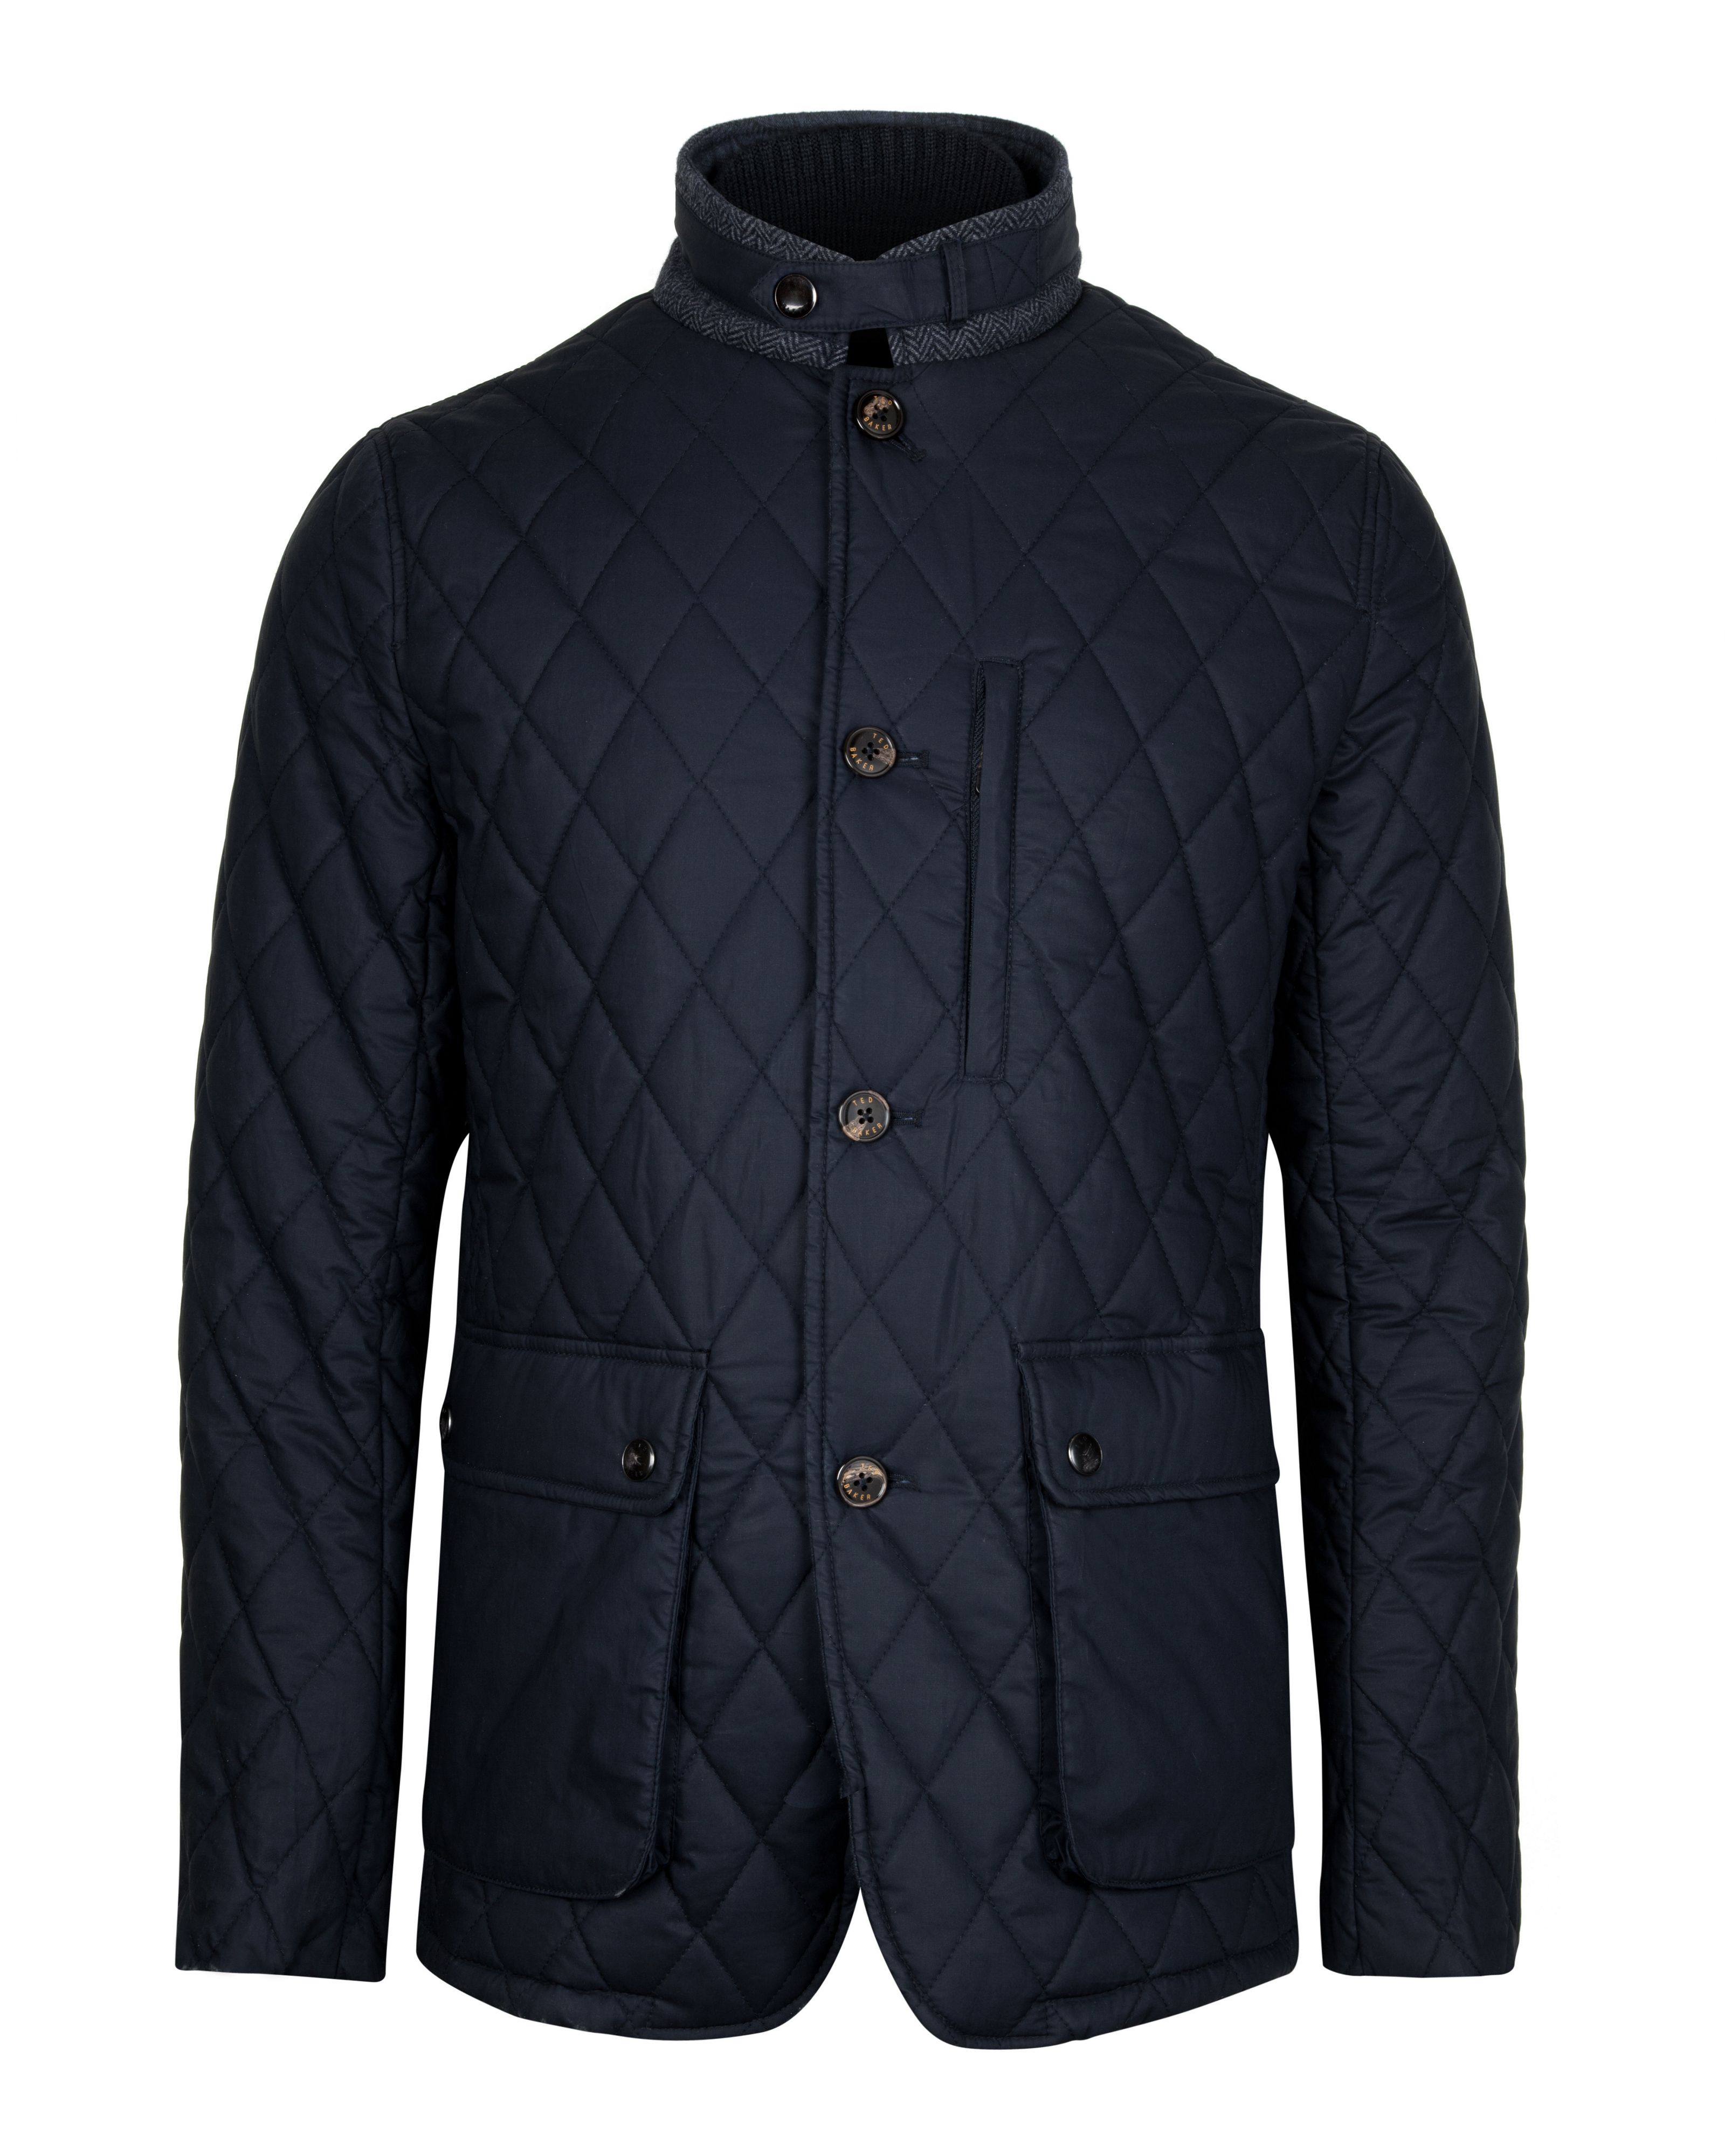 Garyen quilted jacket with inner